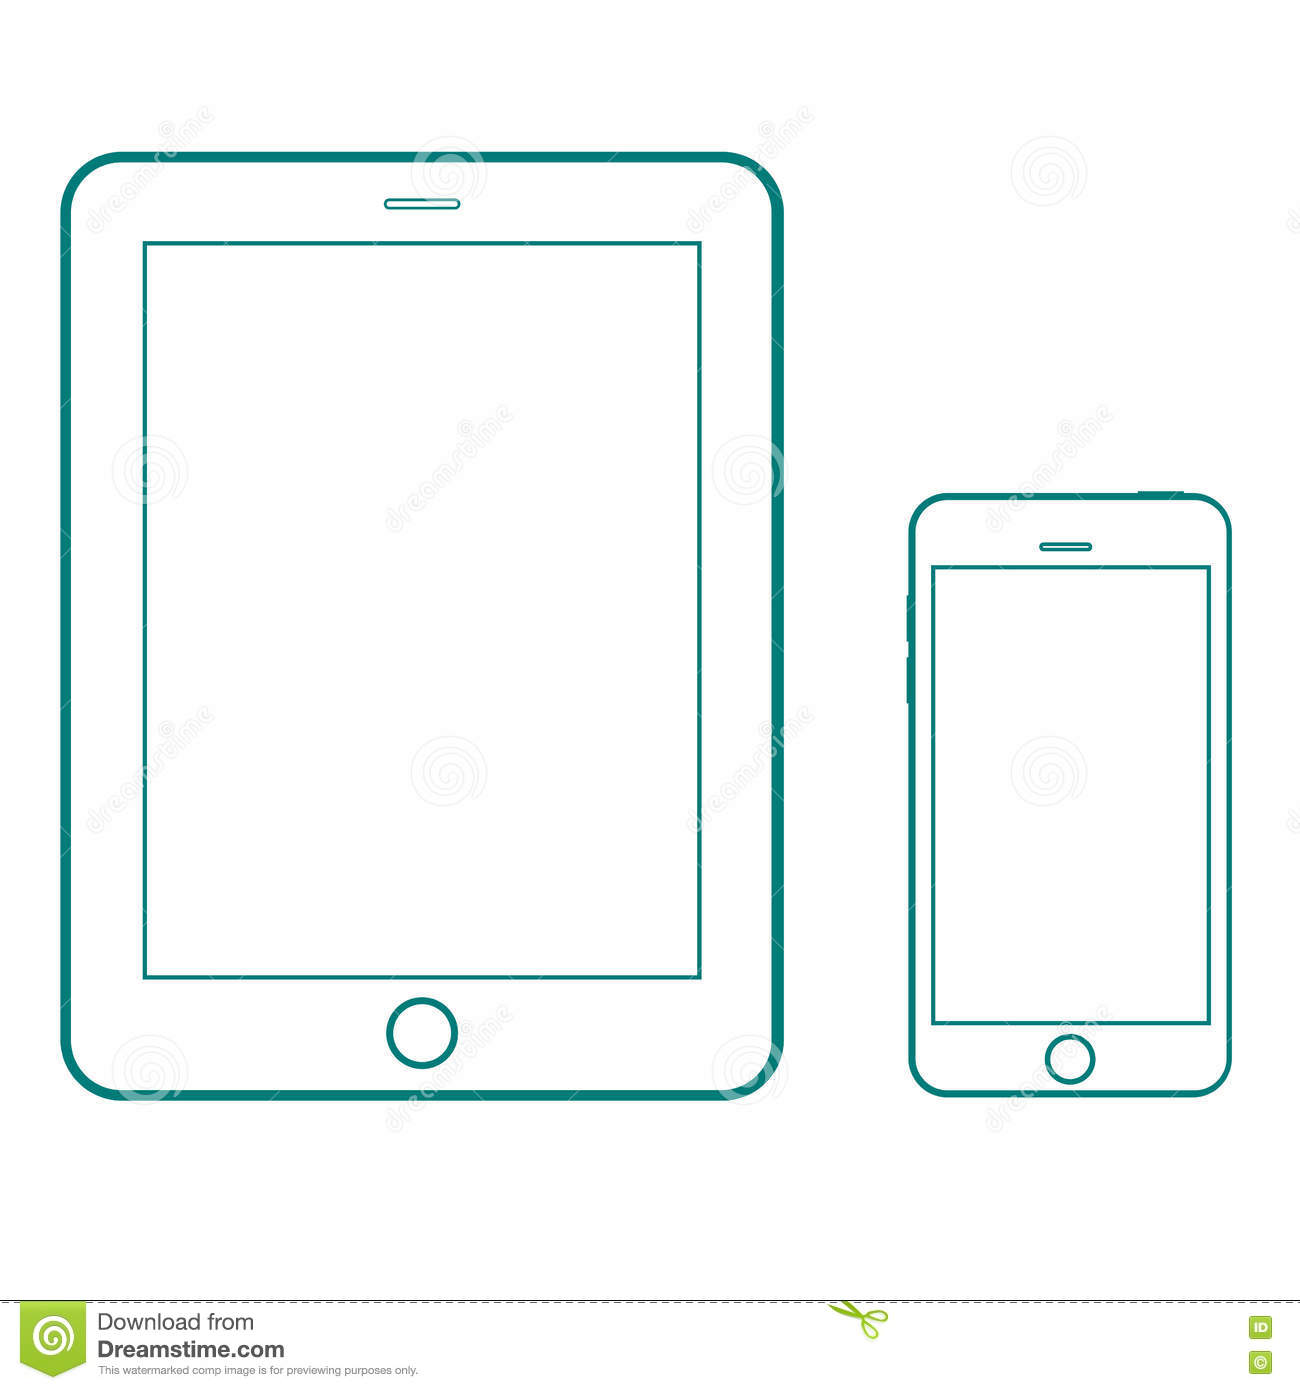 Drawing Smooth Lines In Photo With Tablet : Outline drawing smartphone elegant thin line style design